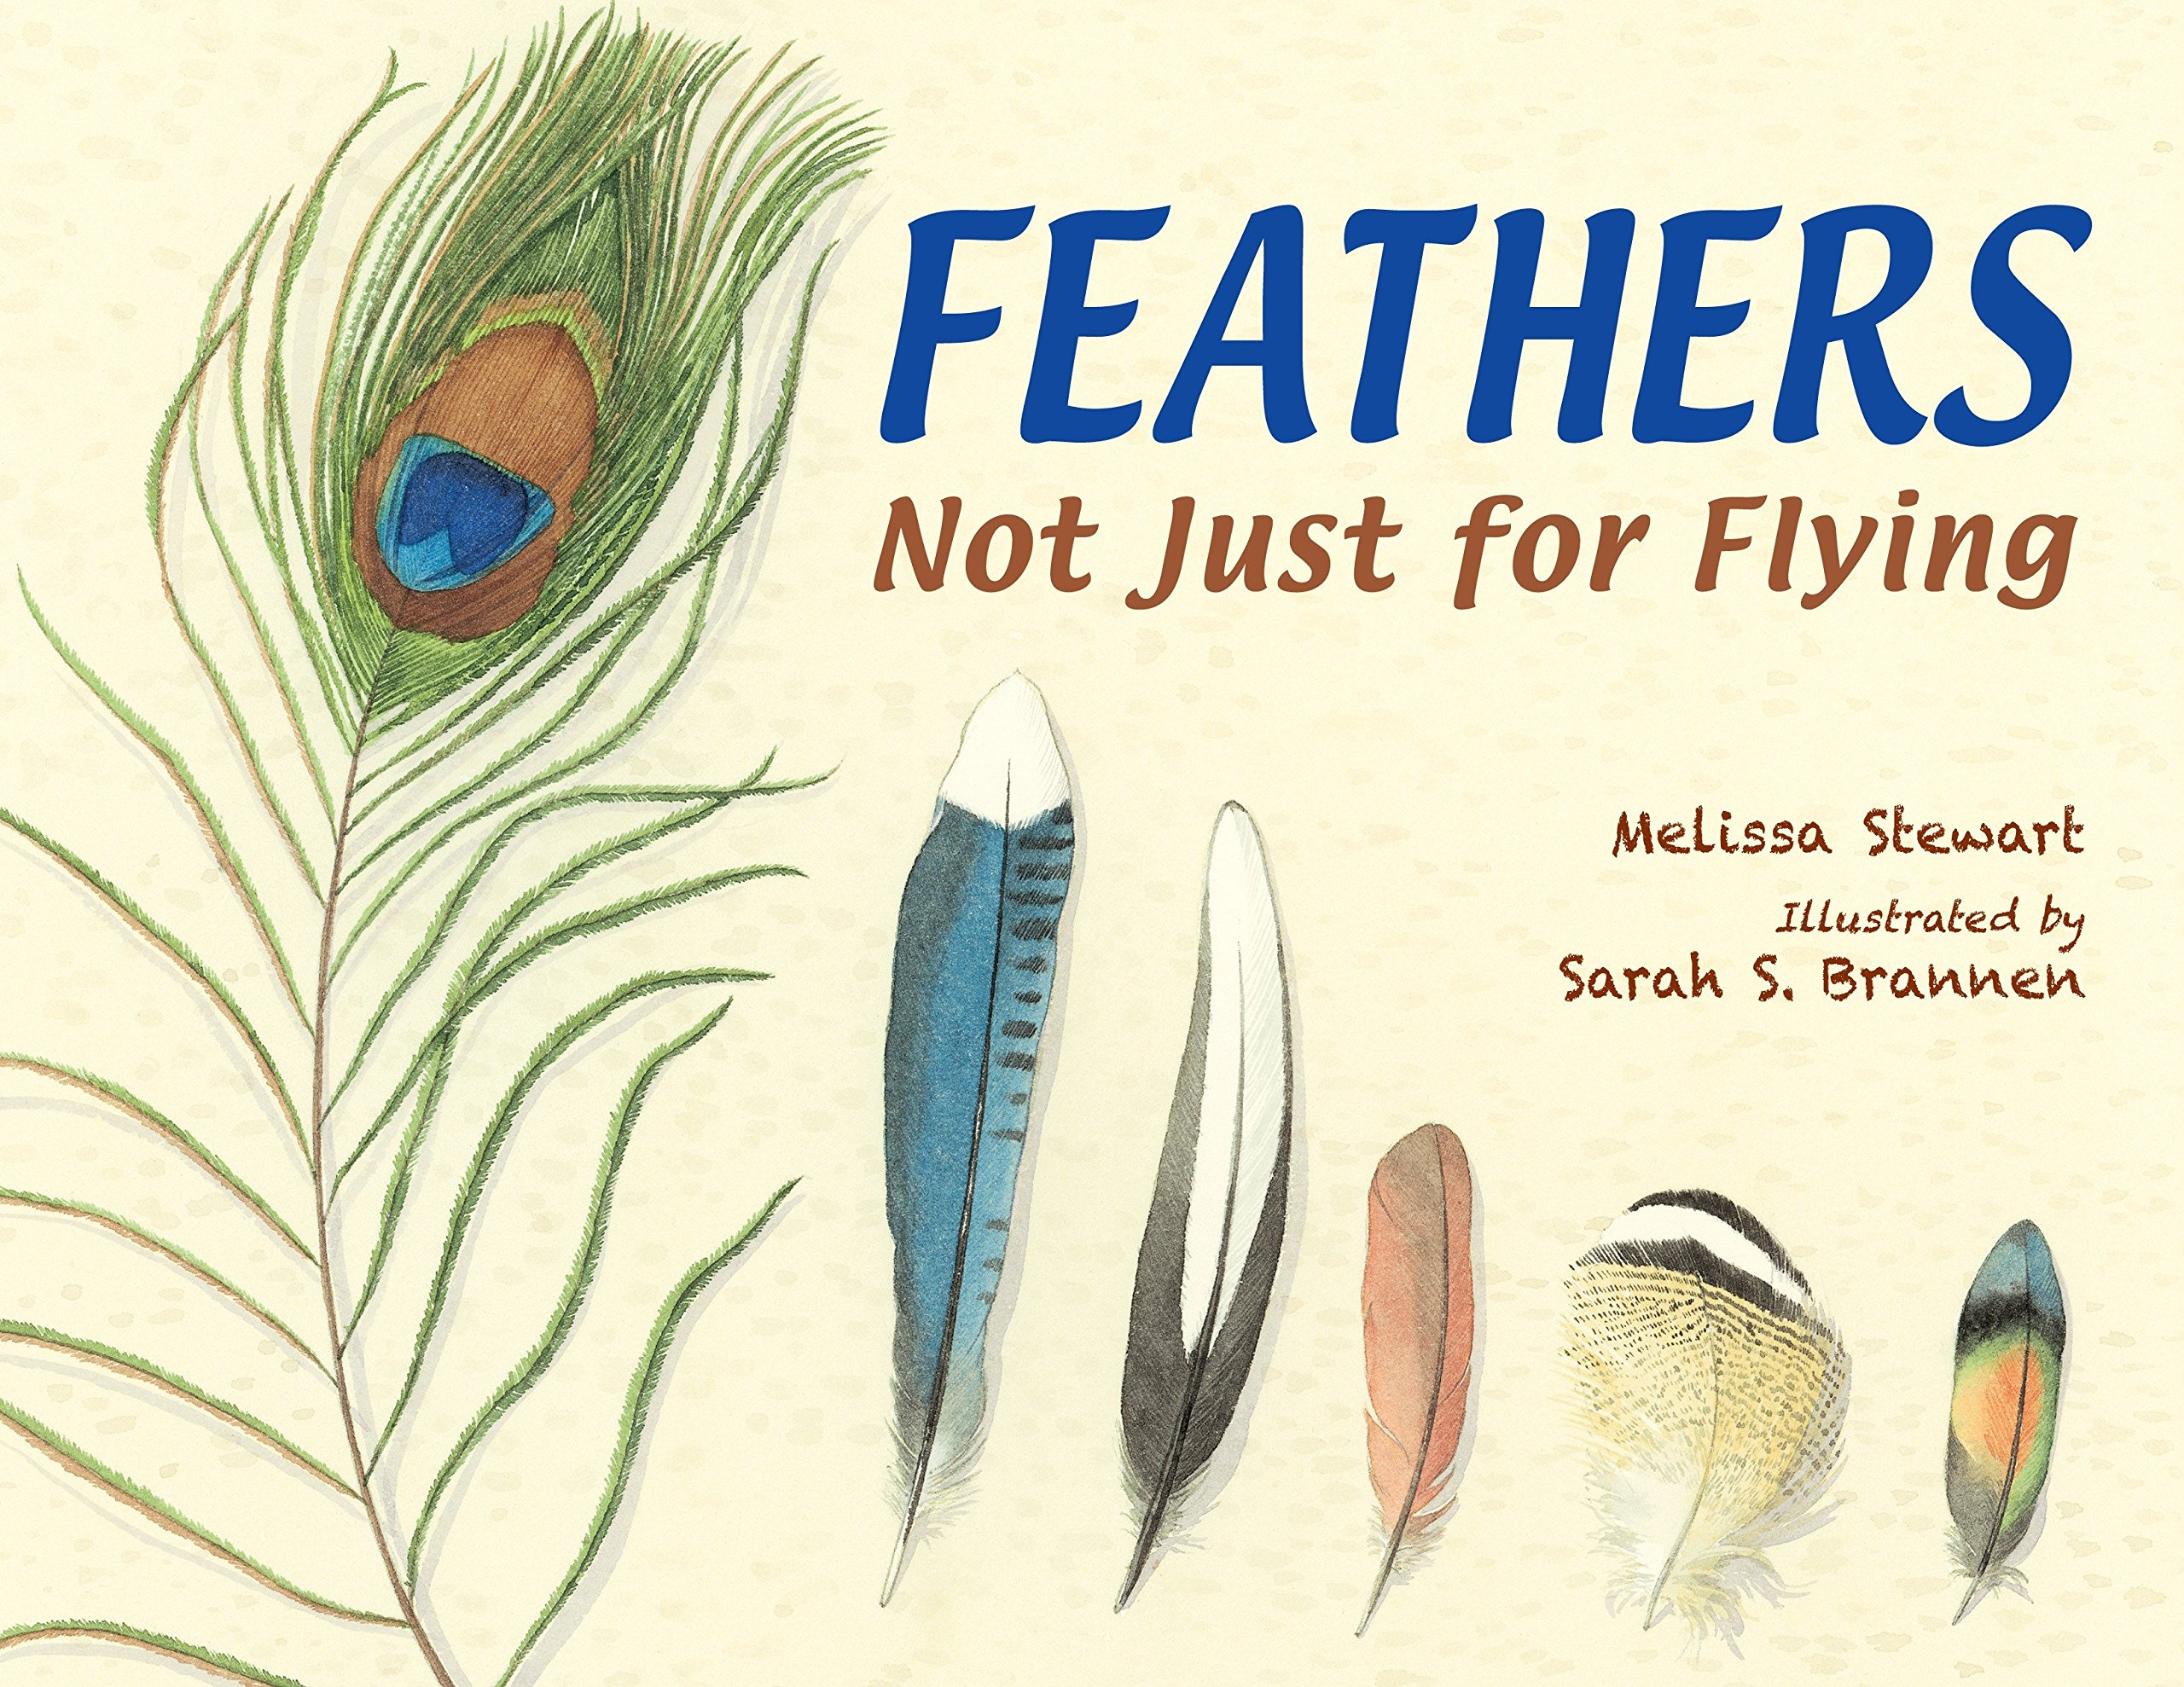 amazon feathers not just for flying melissa stewart sarah s